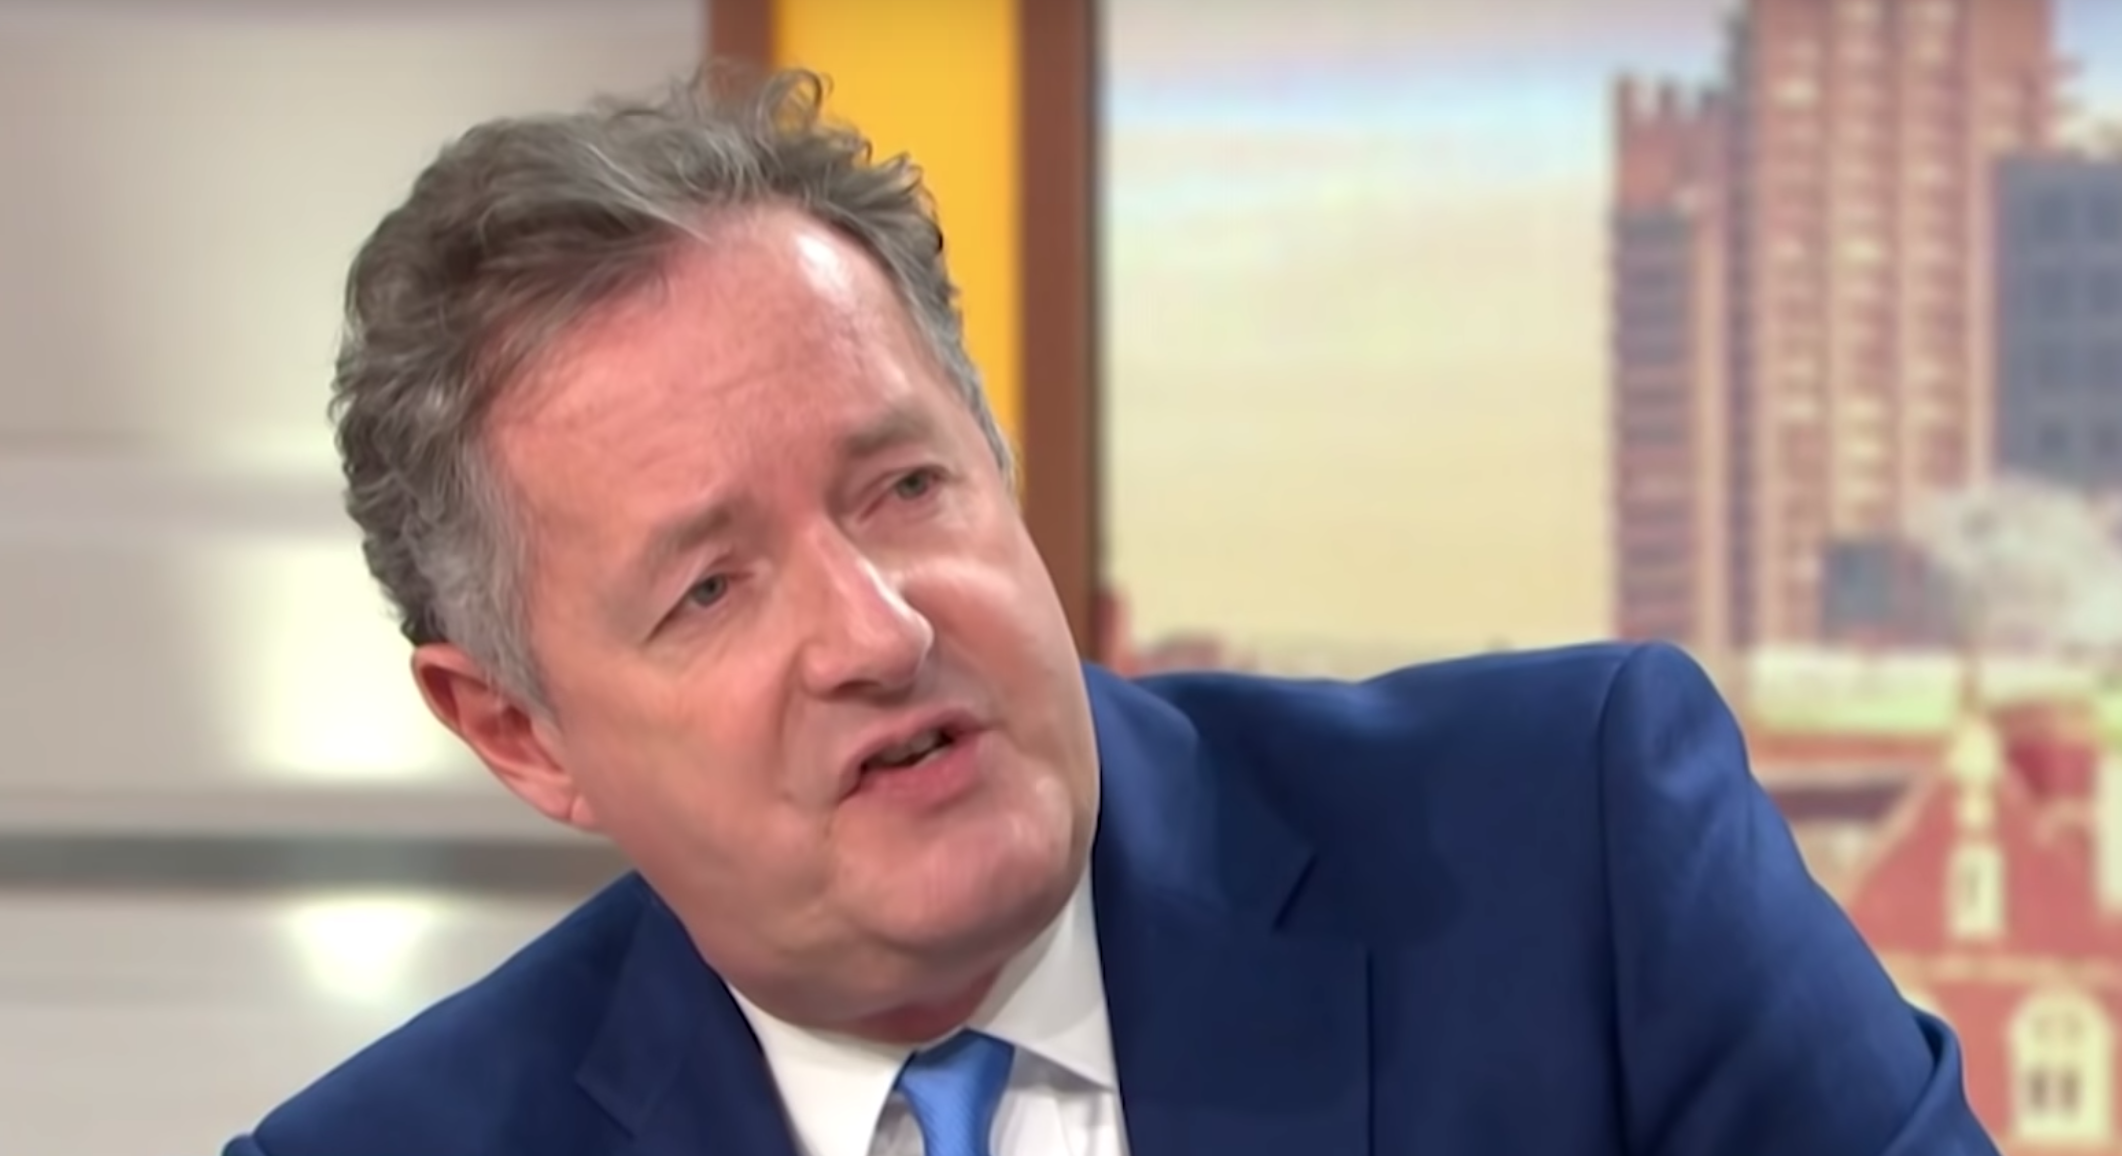 Piers Morgan takes aim at Phillip Schofield and Holly Willoughby as This Morning is snubbed for award